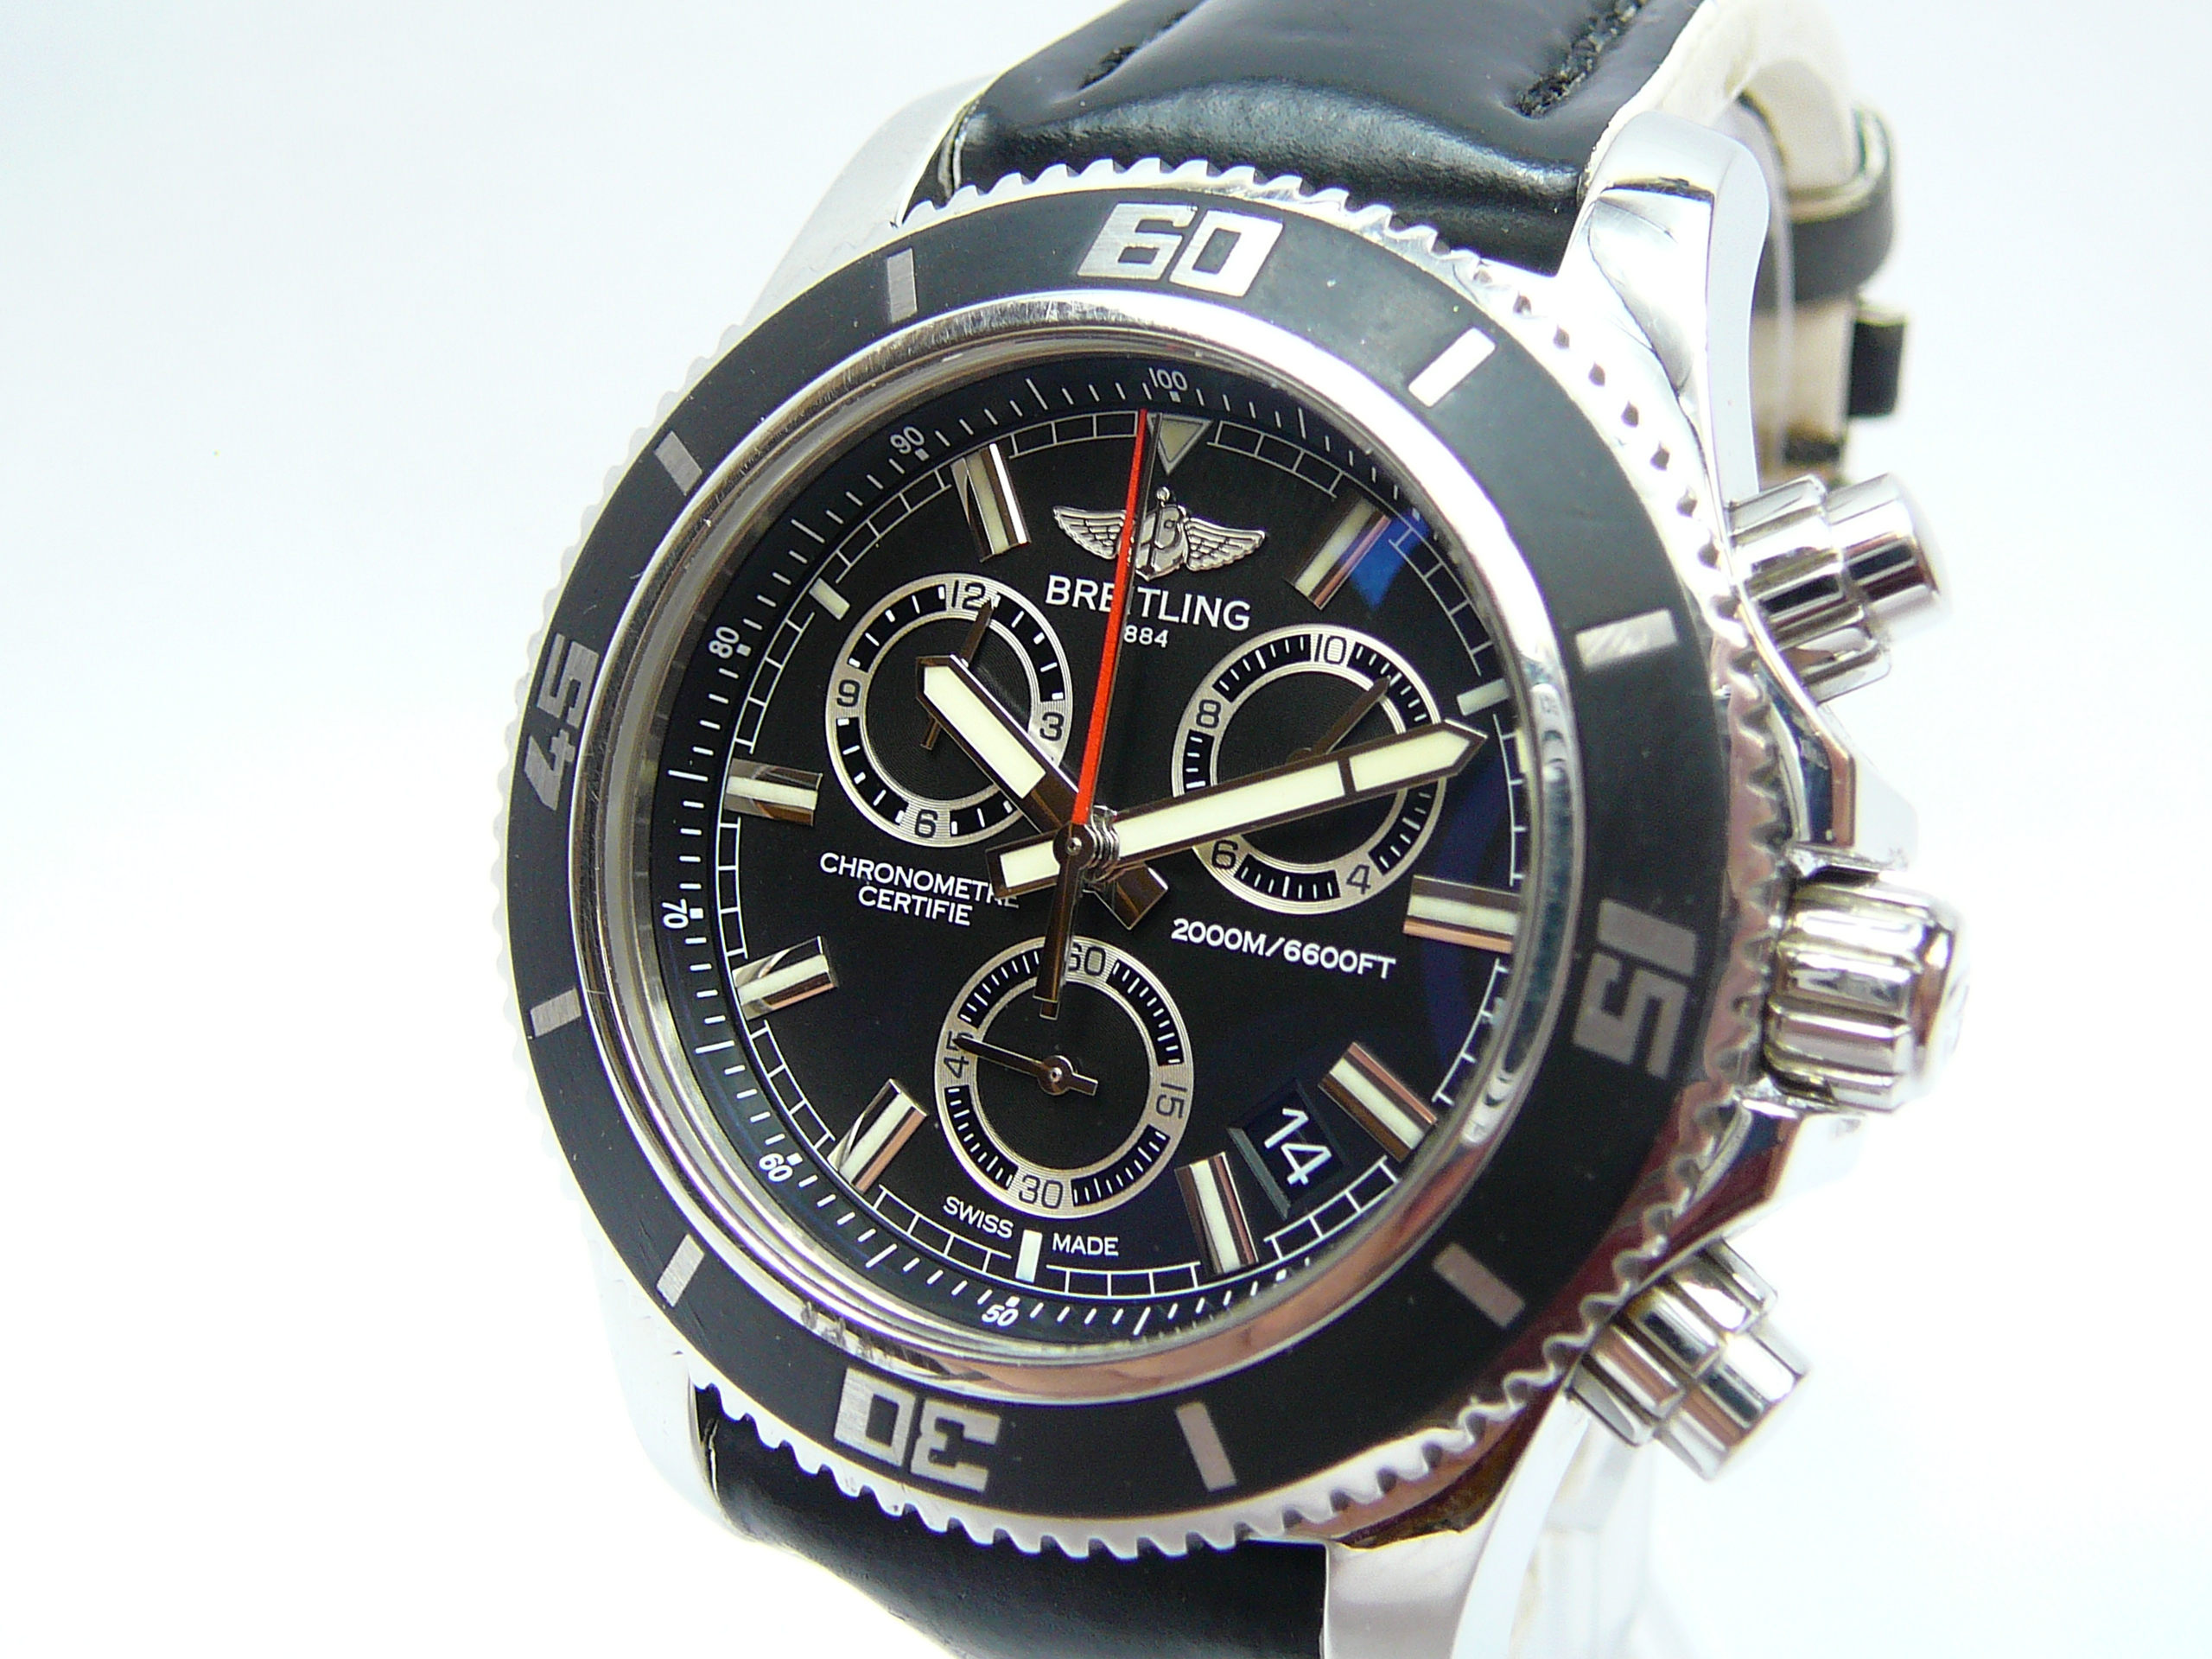 Gents Breitling Wrist Watch - Image 3 of 5